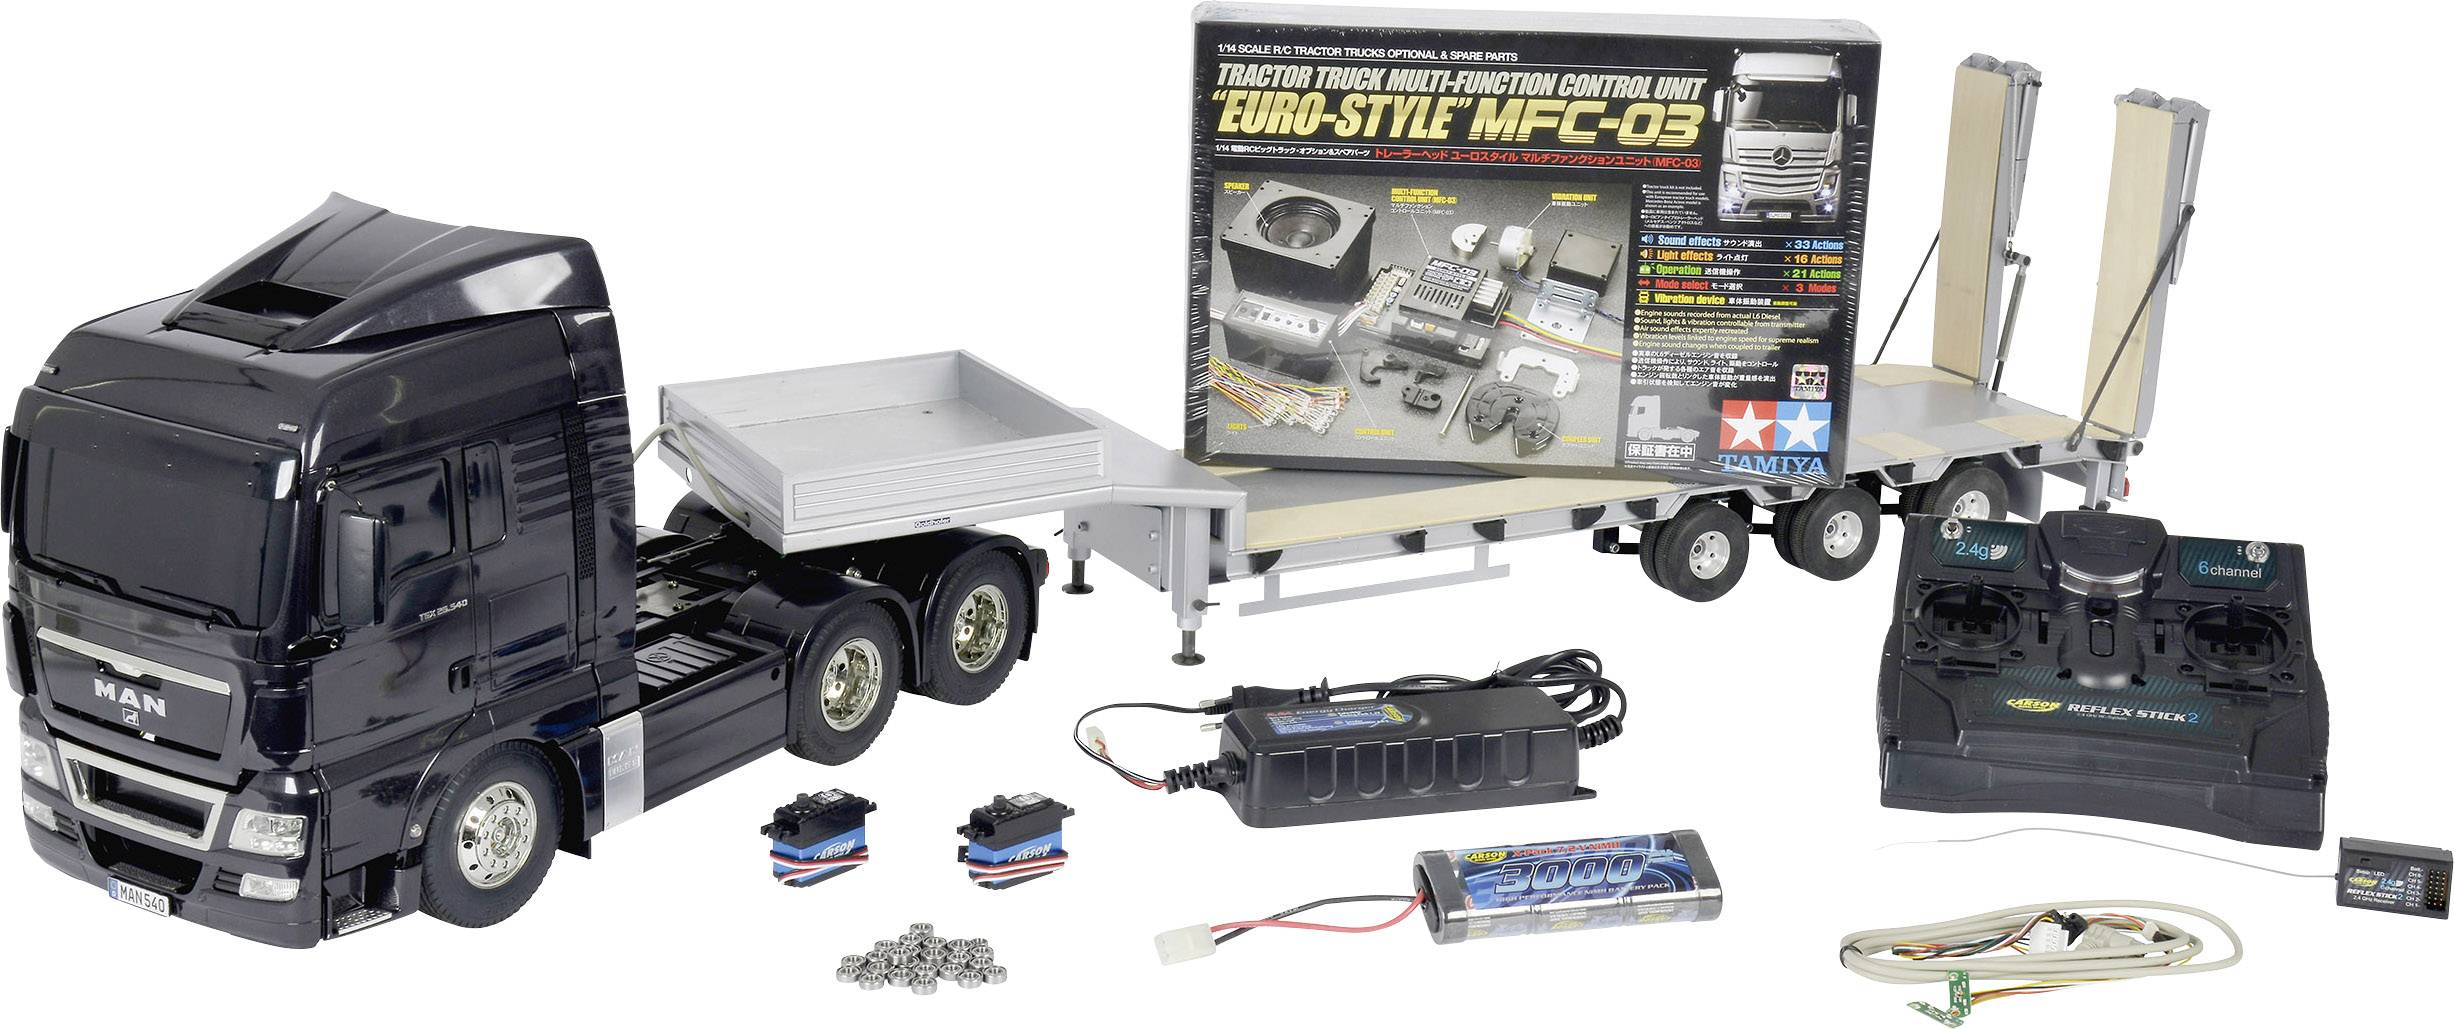 Tamiya 56346 MAN TGX 26 540 1:14 Electric RC model truck